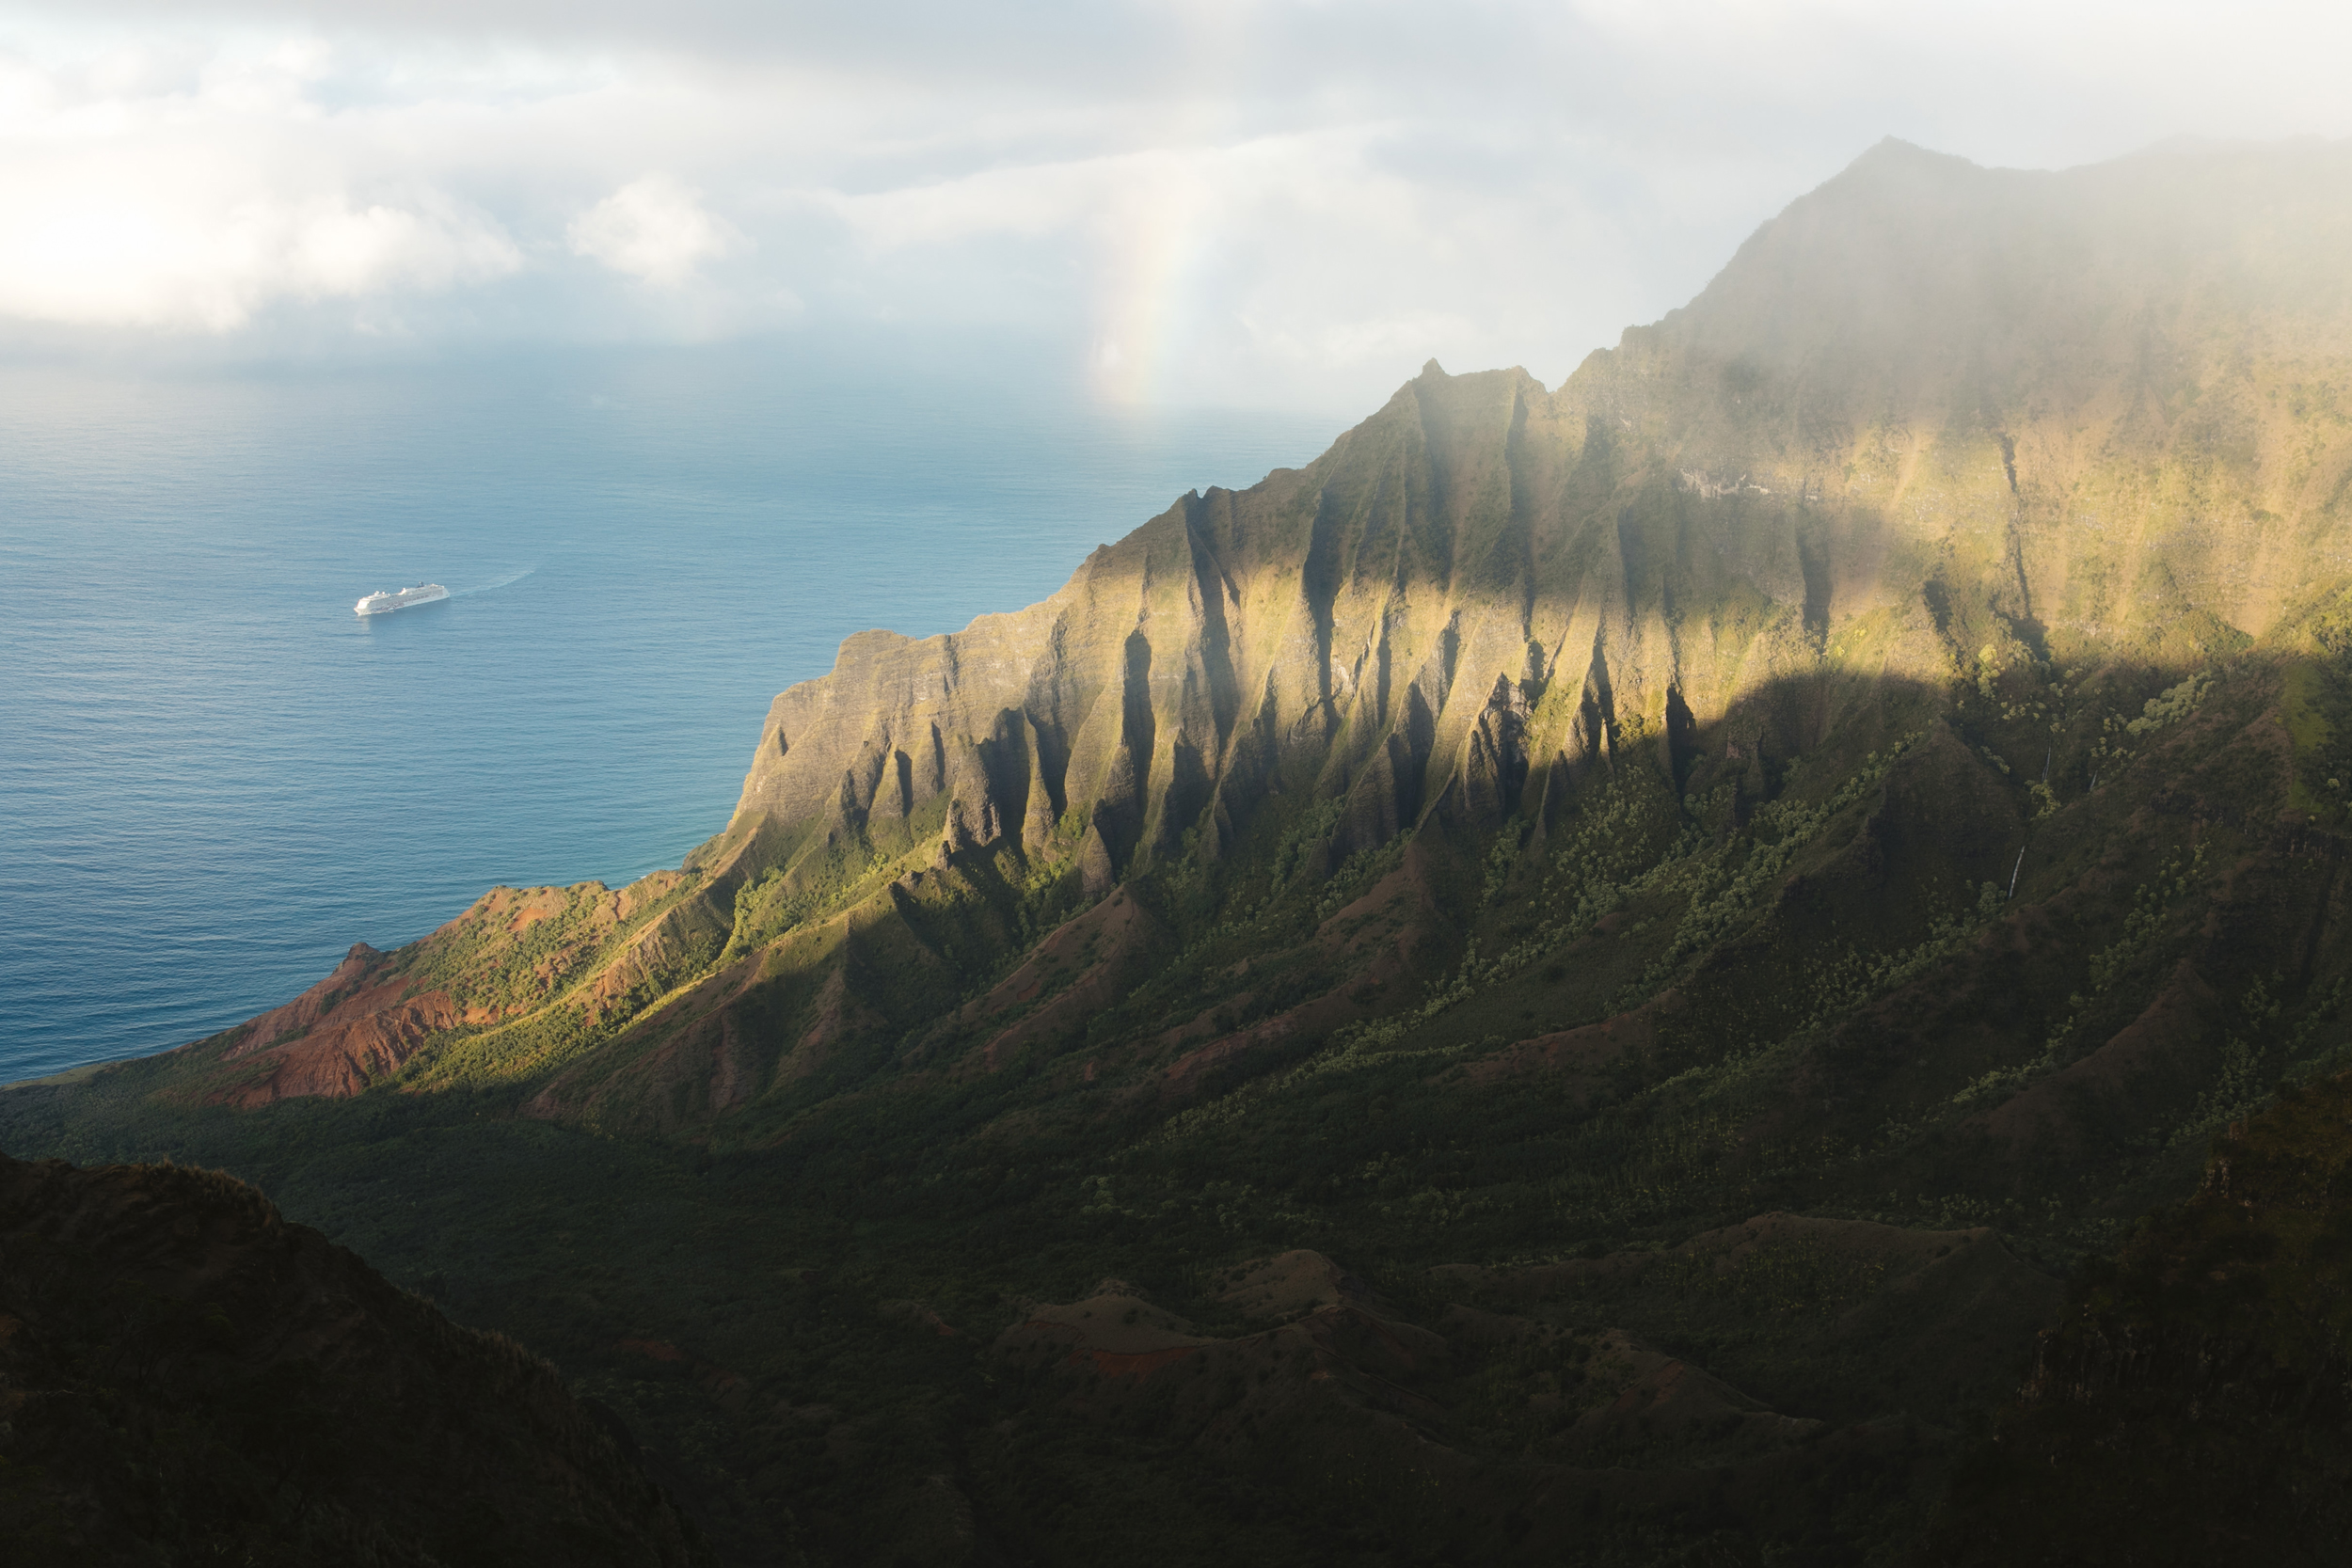 Kalepa ridge elopement ceremony location with Kauai Wedding photographers Colby and Jess